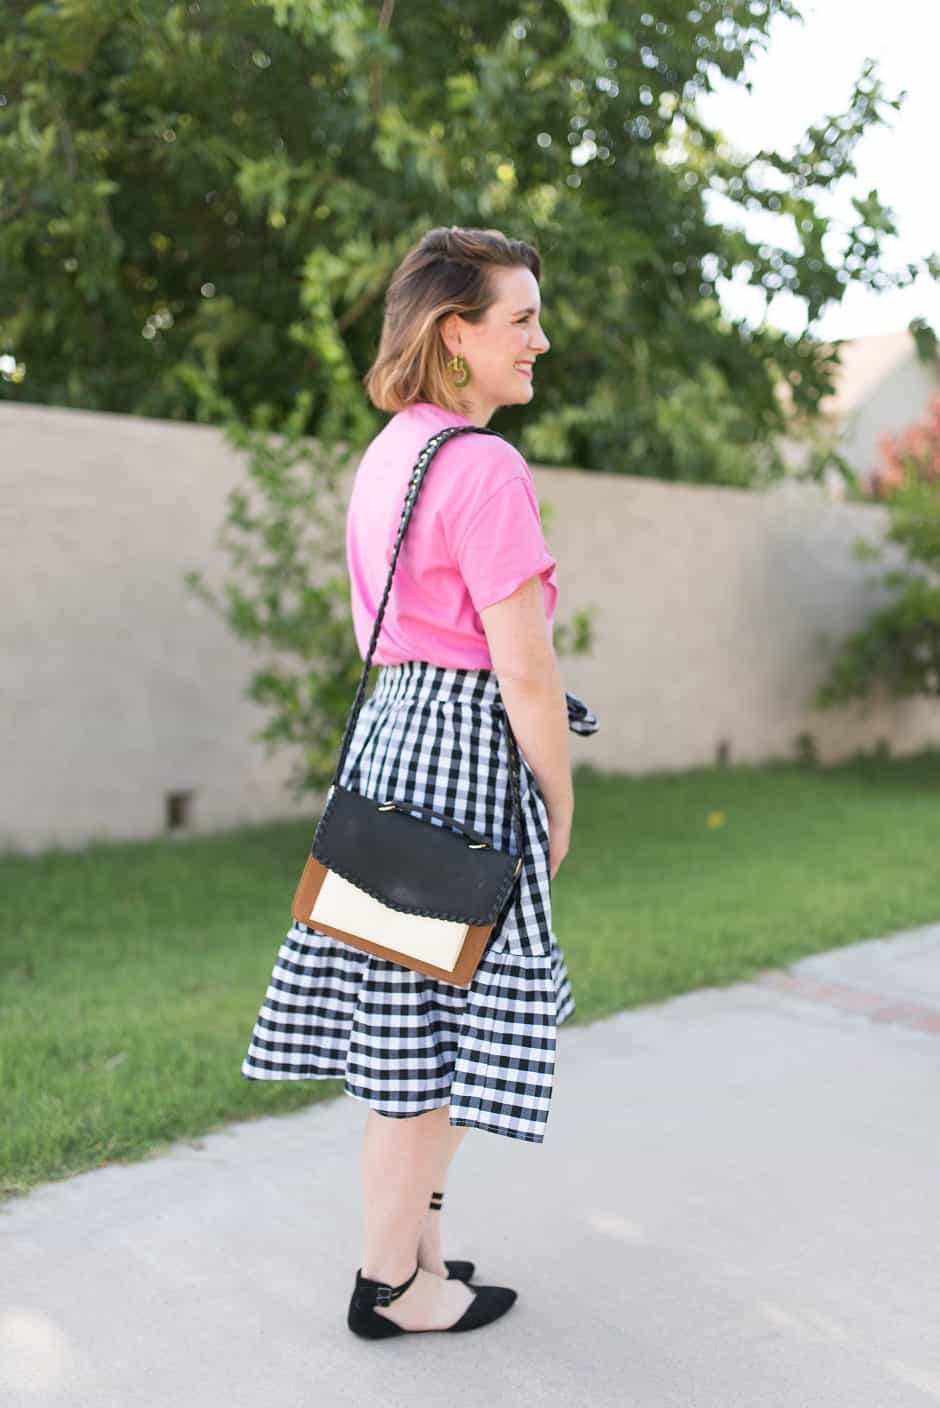 Gingham is still going strong as a trend in women's clothing and we're loving it! But it's not always easy to figure out what to wear with it. Read on for tips on how to style a gingham skirt and ensure you keep it looking grown up!